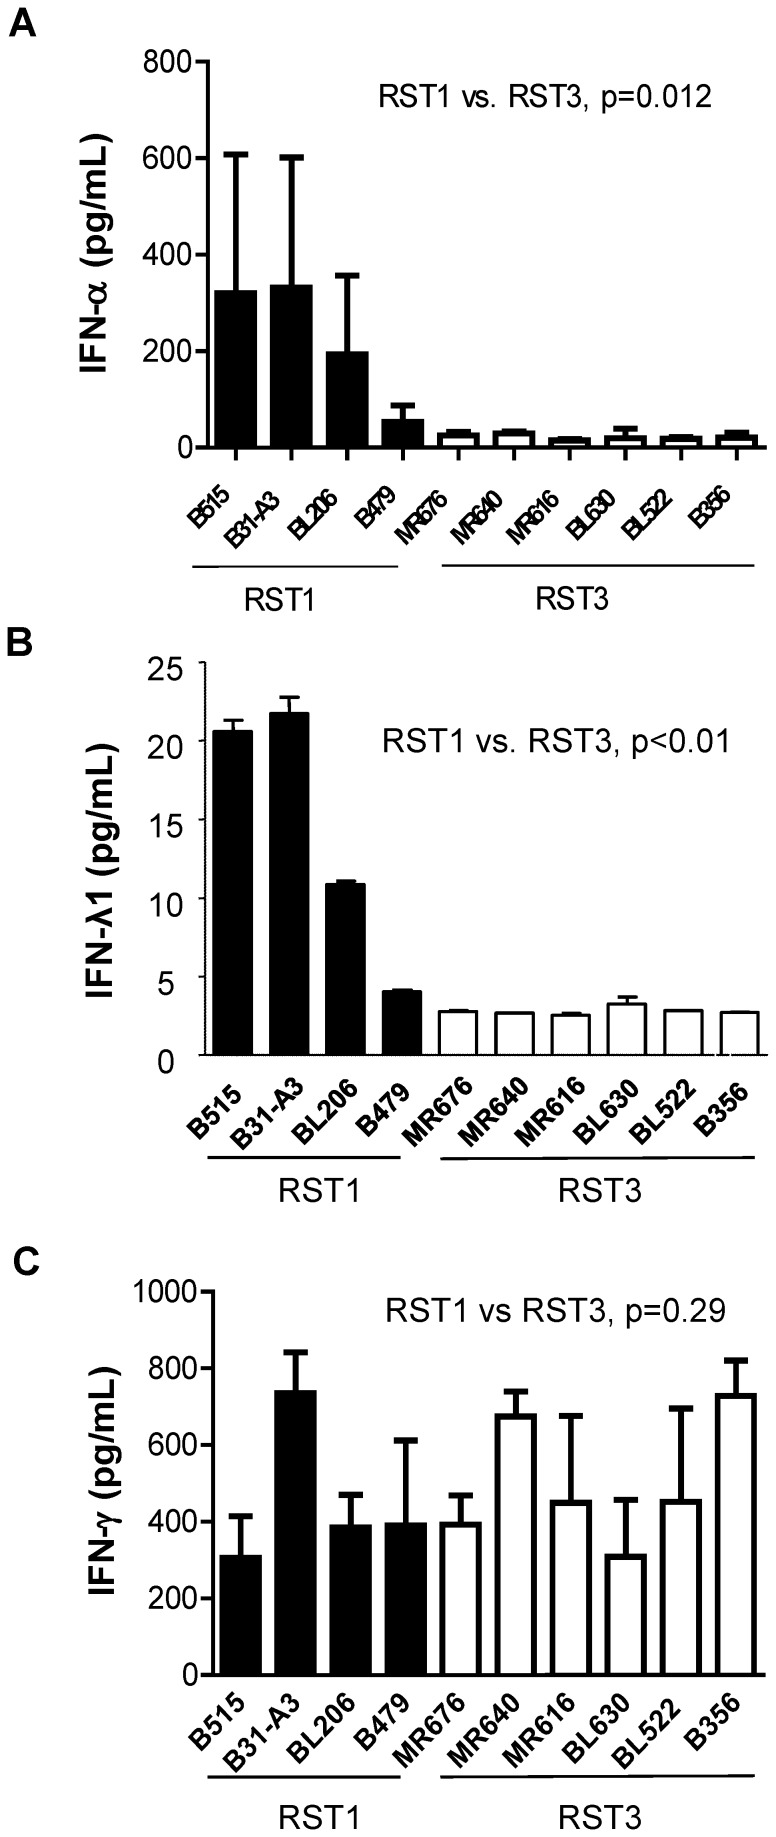 RST1 isolates induce expression of multiple interferons. Human PBMCs (4×10 6 ) were co-incubated for 20 hrs with RST1 (black bars) or RST3 (white bars) B. burgdorferi clinical isolates (4×10 7 ) (MOI = 10∶1). Concentrations of human IFN-α ( A ), IFN-λ1/IL29 ( B ), or IFN-γ ( C ) proteins in cell-free culture supernatants were quantitated by ELISA ( A , B ) or cytometric bead array ( C ). Columns represent the mean ± SD of values from three blood donors assessed in independent experiments, with the exception of ( B ) which represents results from a single donor. Statistical analysis was performed using a non-parametric, two-tailed Mann-Whitney U-test.